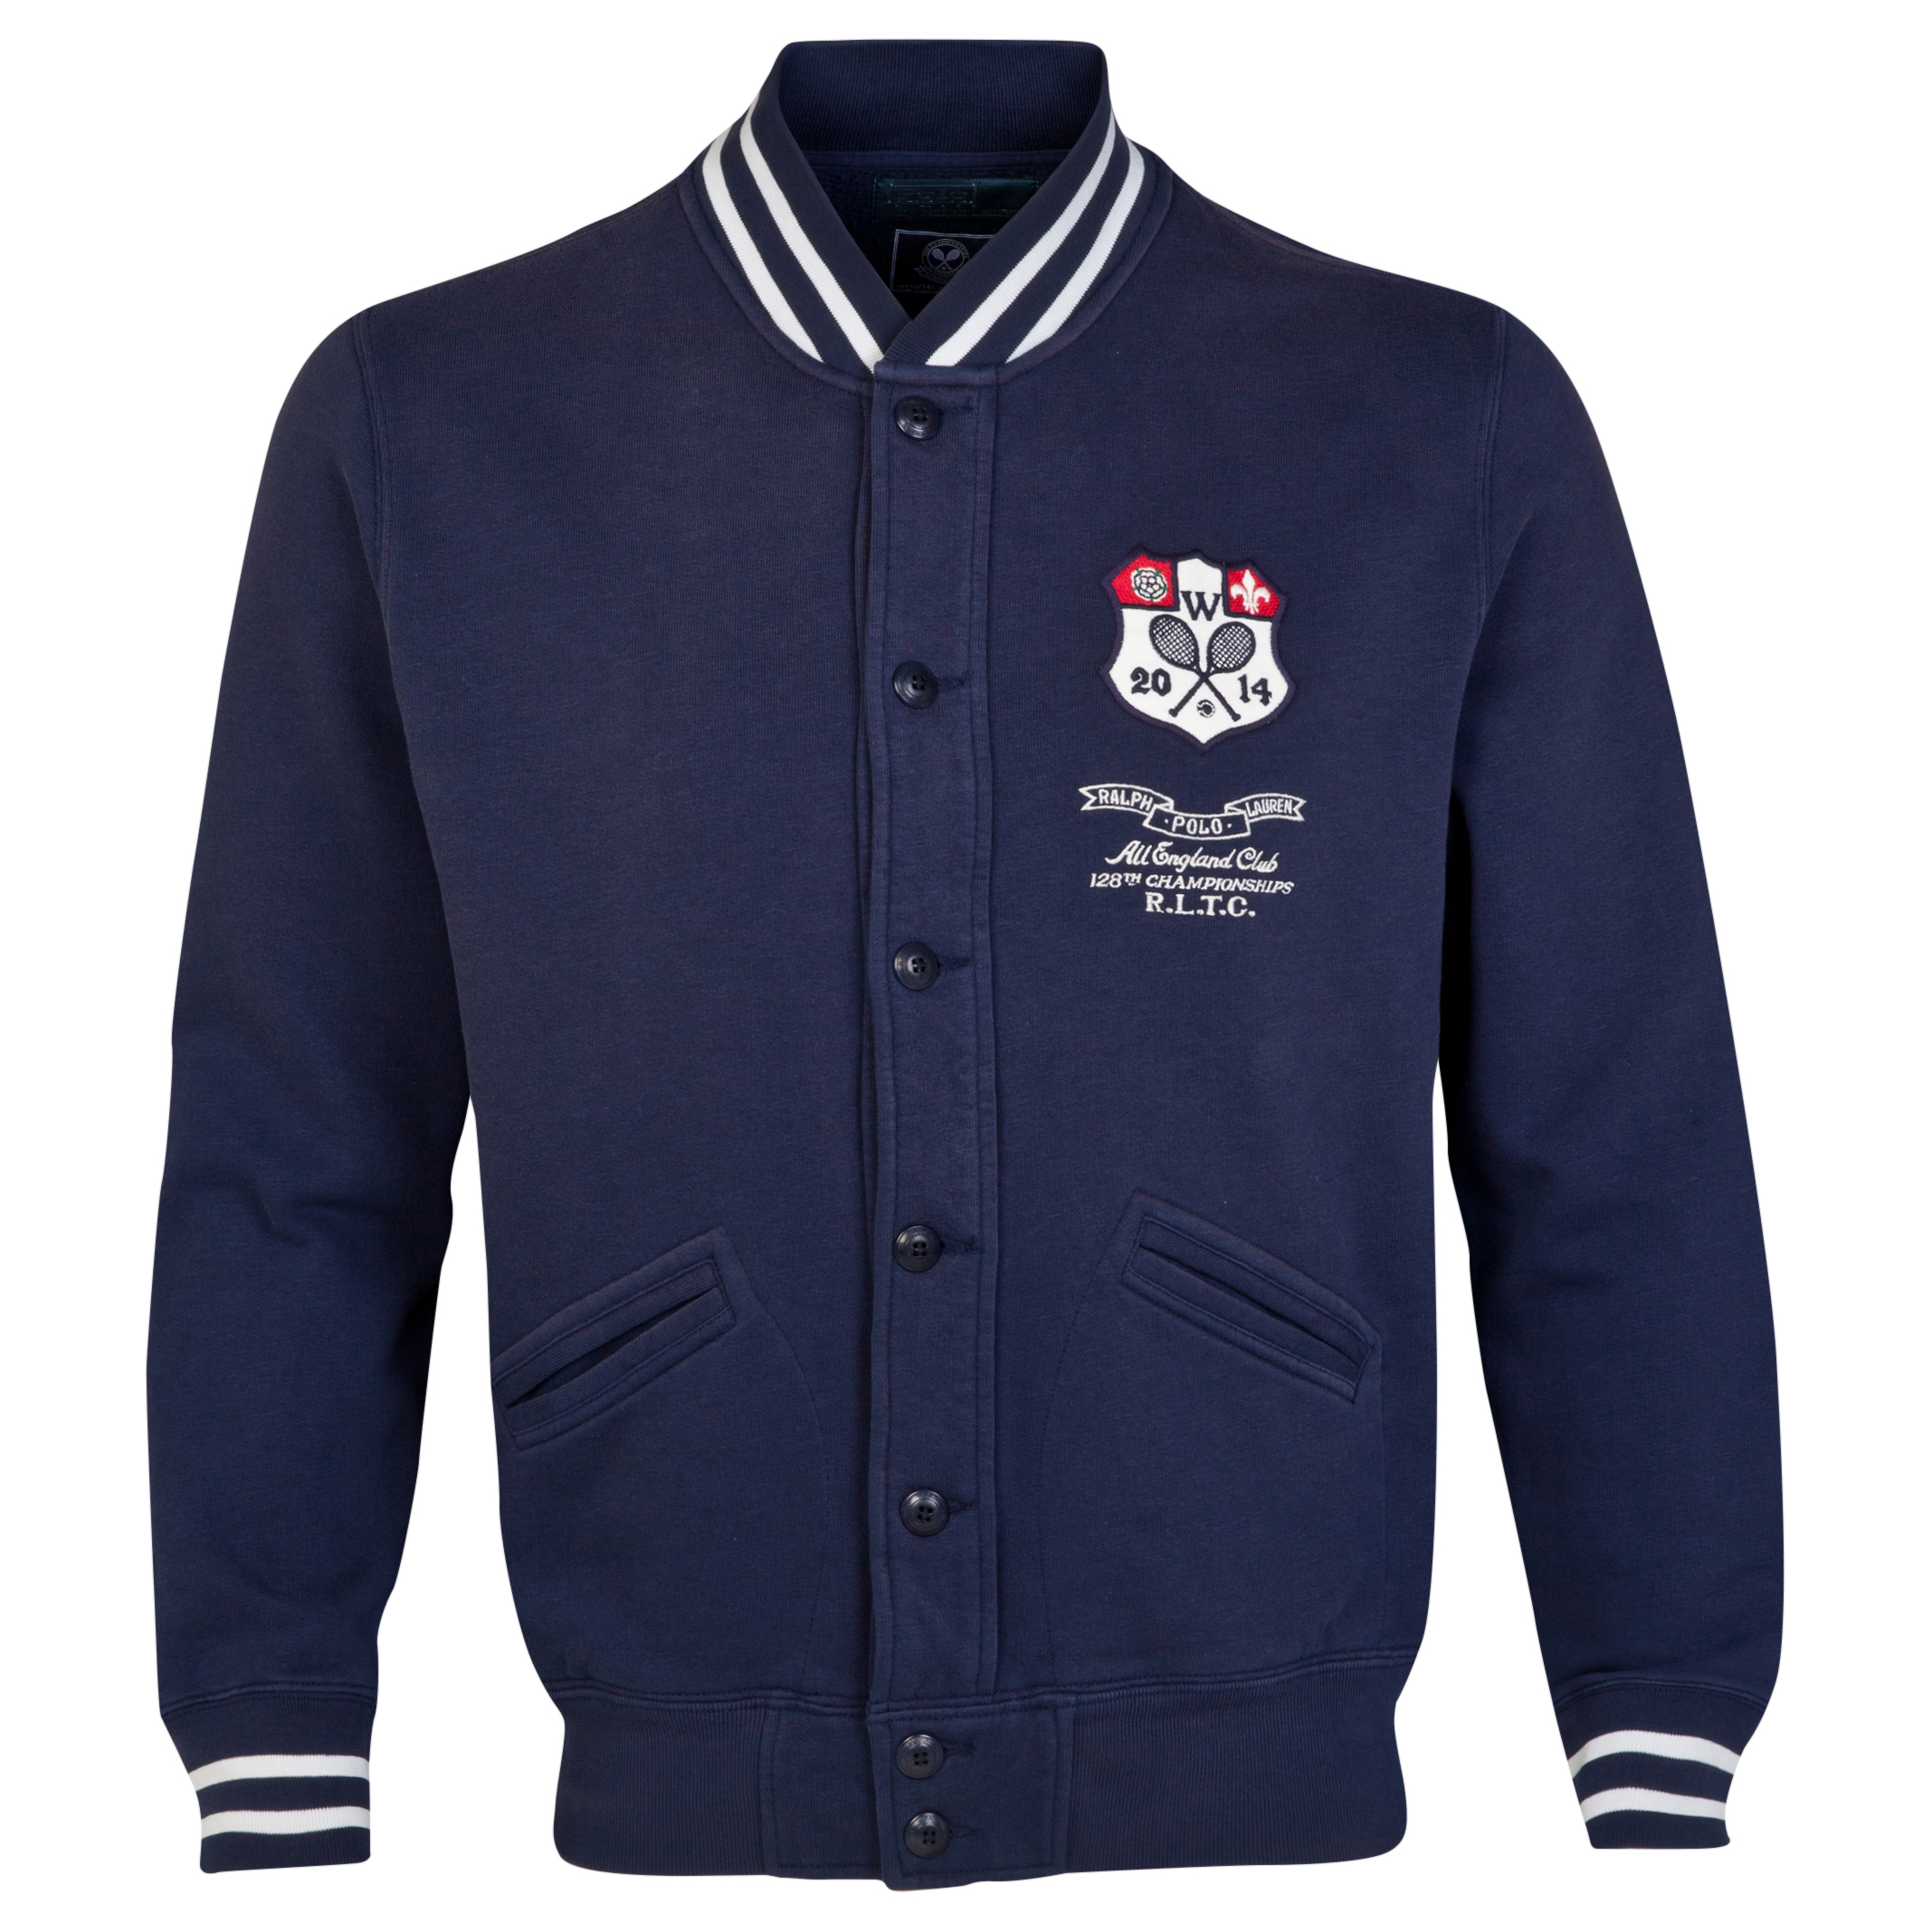 Wimbledon Polo Ralph Lauren Baseball Jacket French Navy